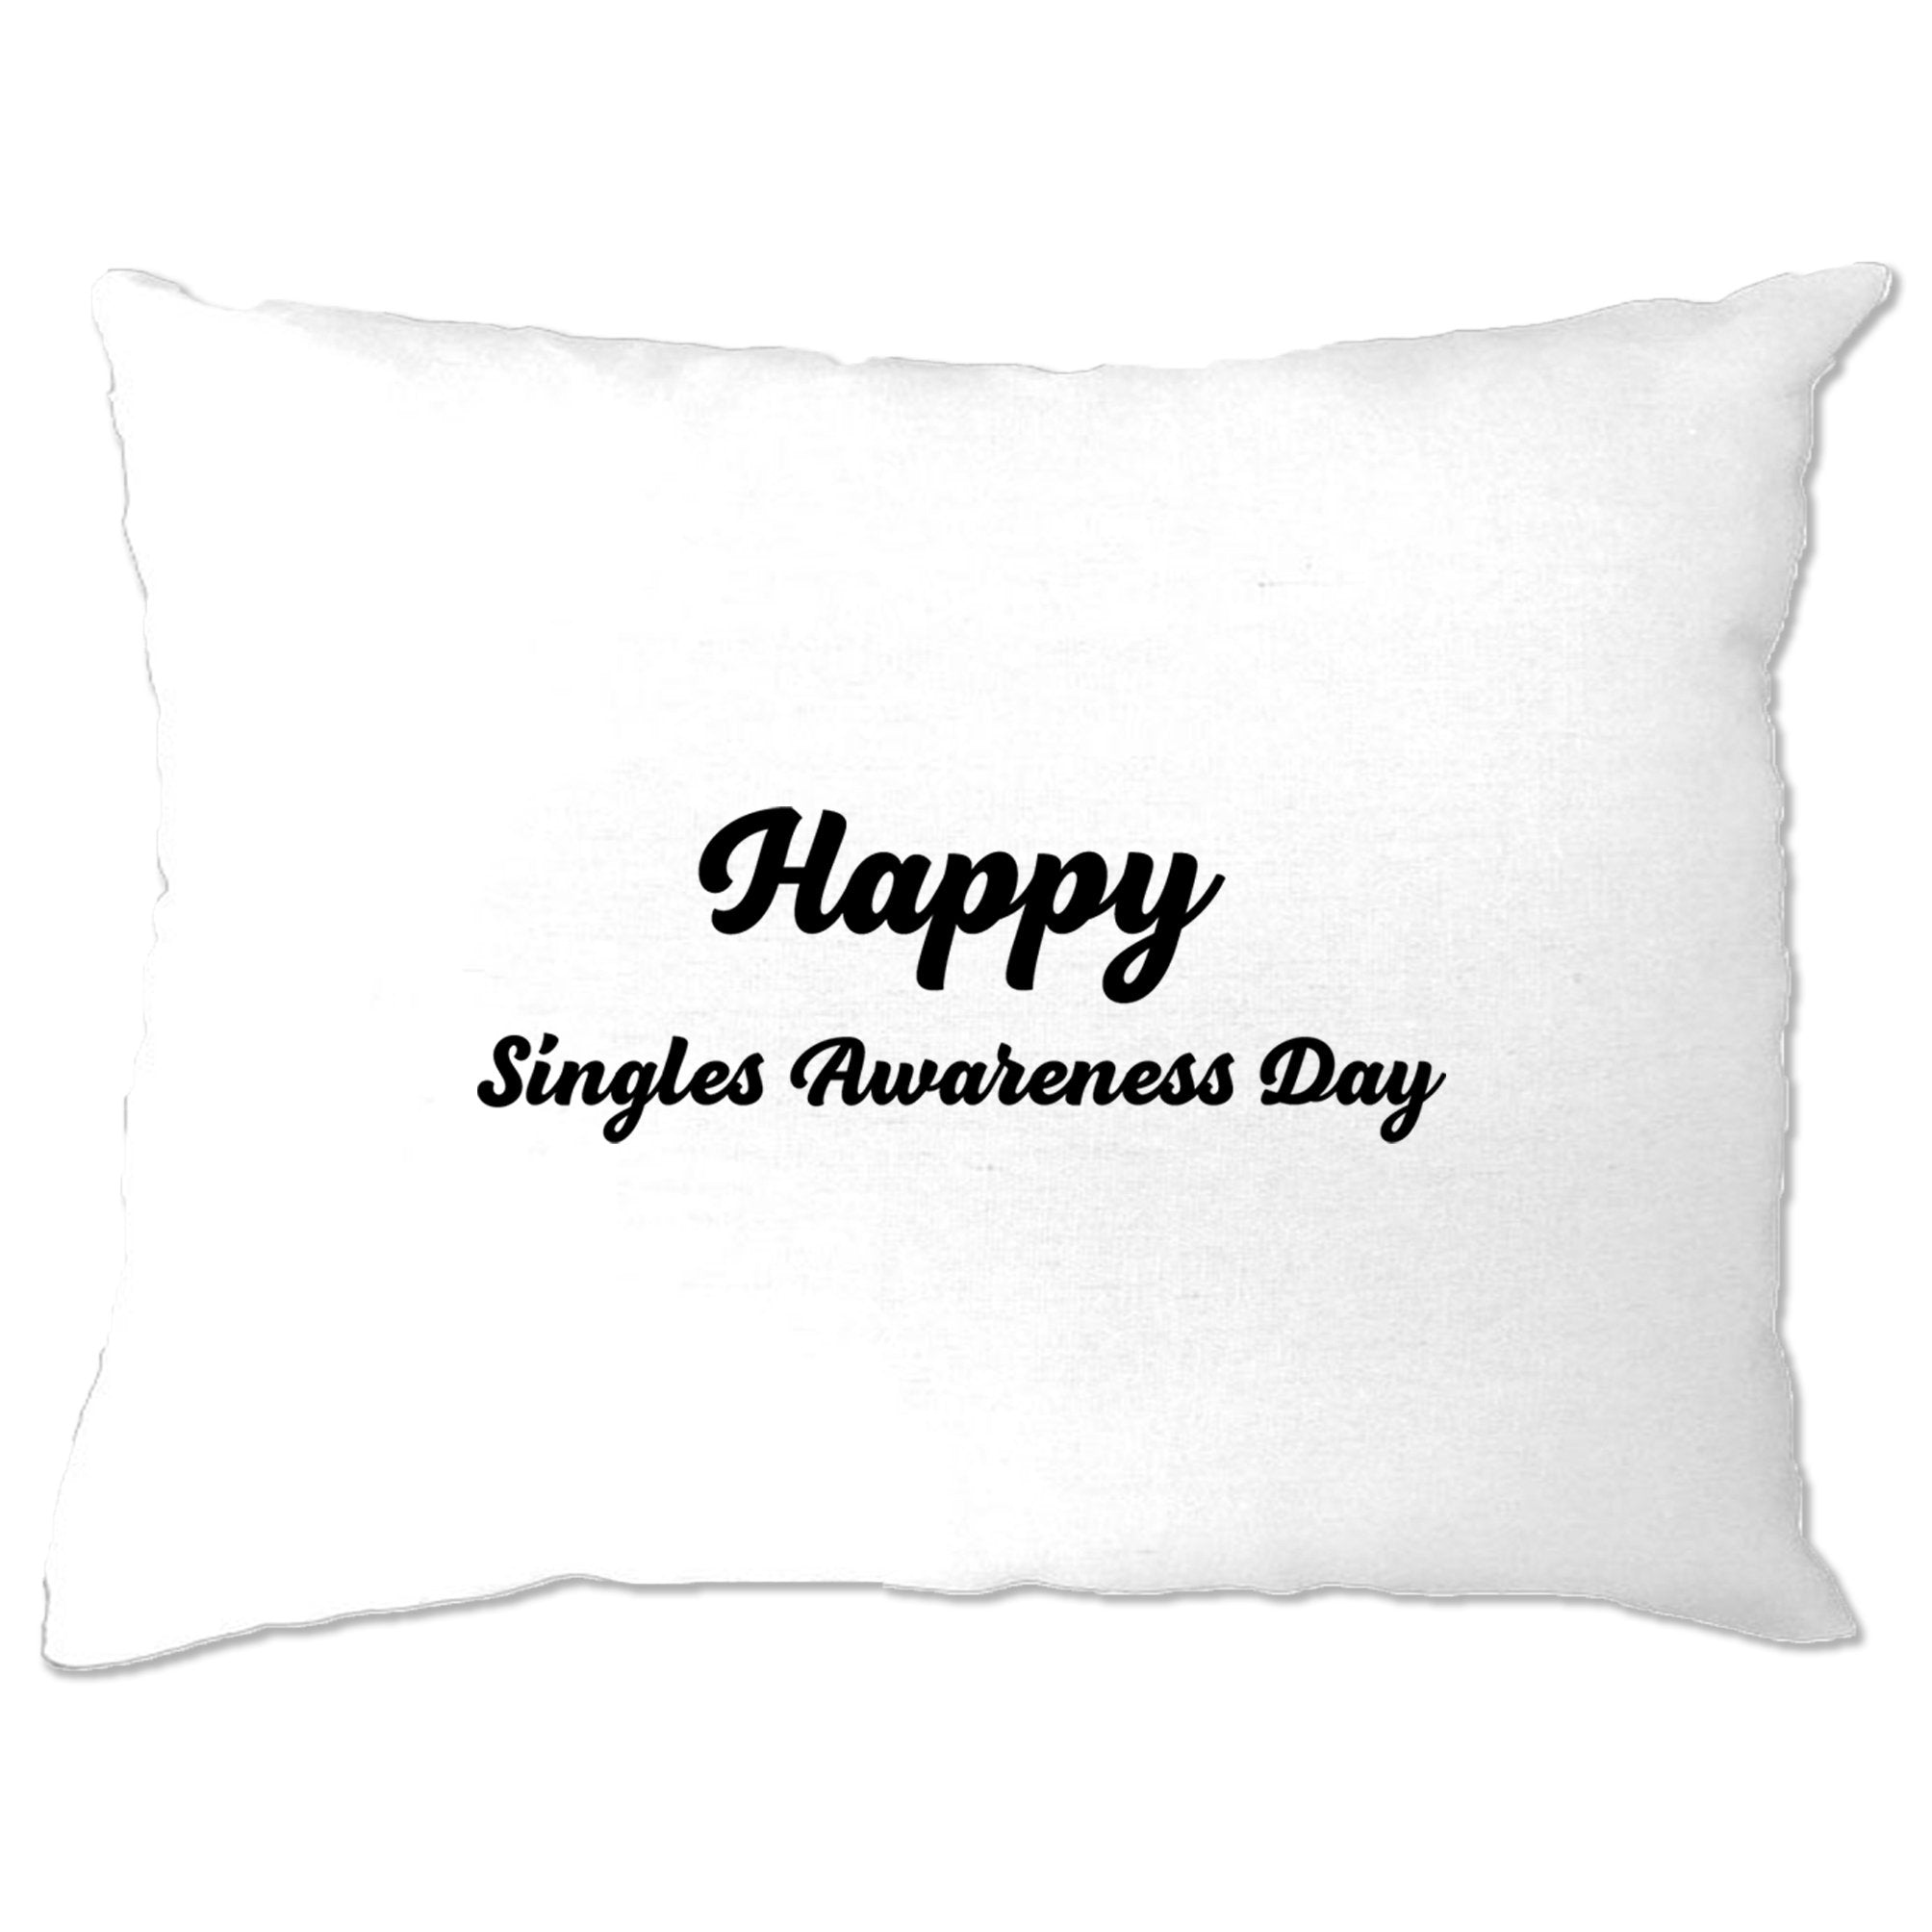 Joke Valentine's Day Pillow Case Singles Awareness Day